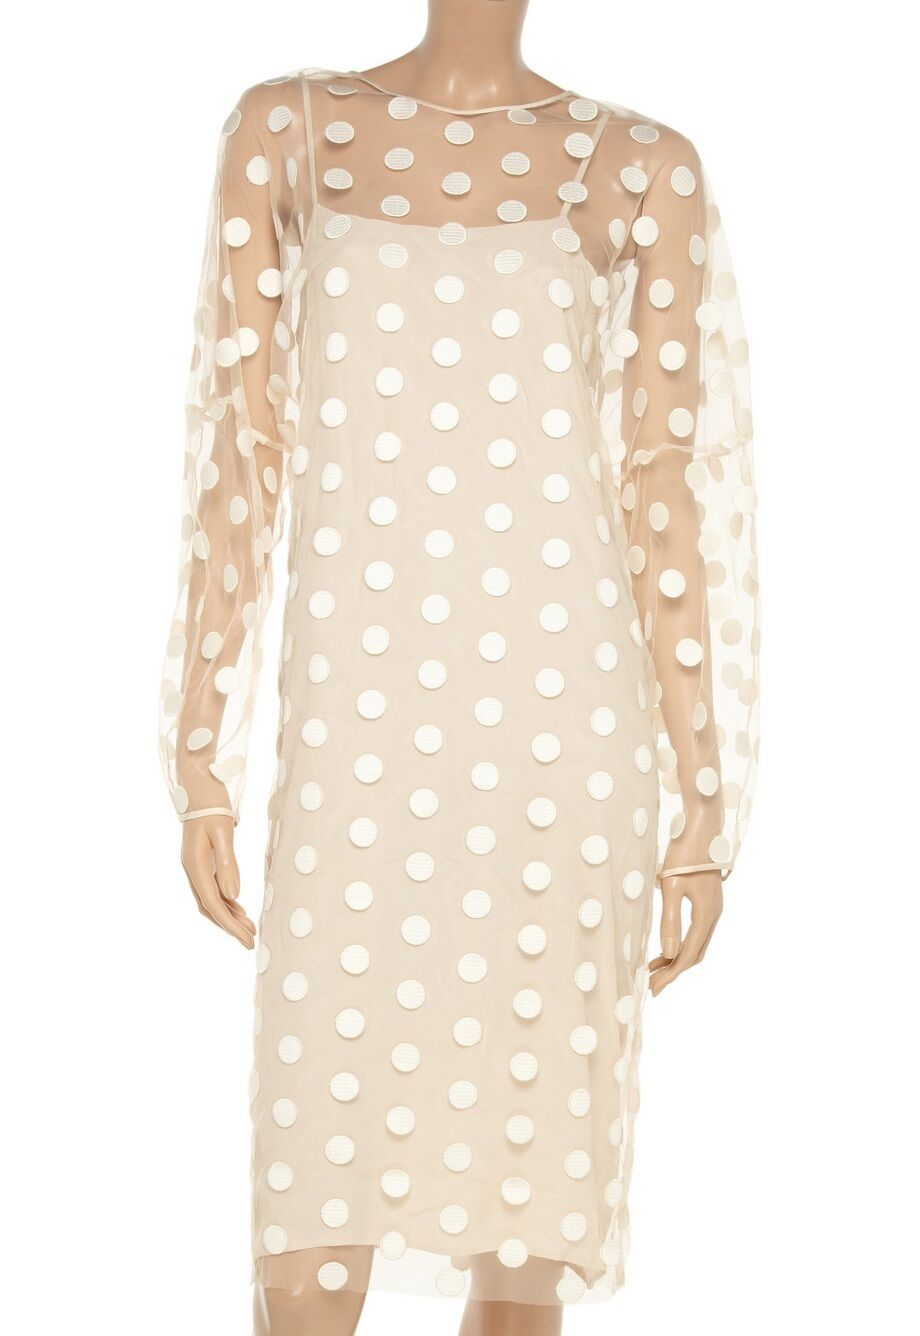 Stella McCartney Runway Ivory Polka Dot Embroidered Tulle Dress